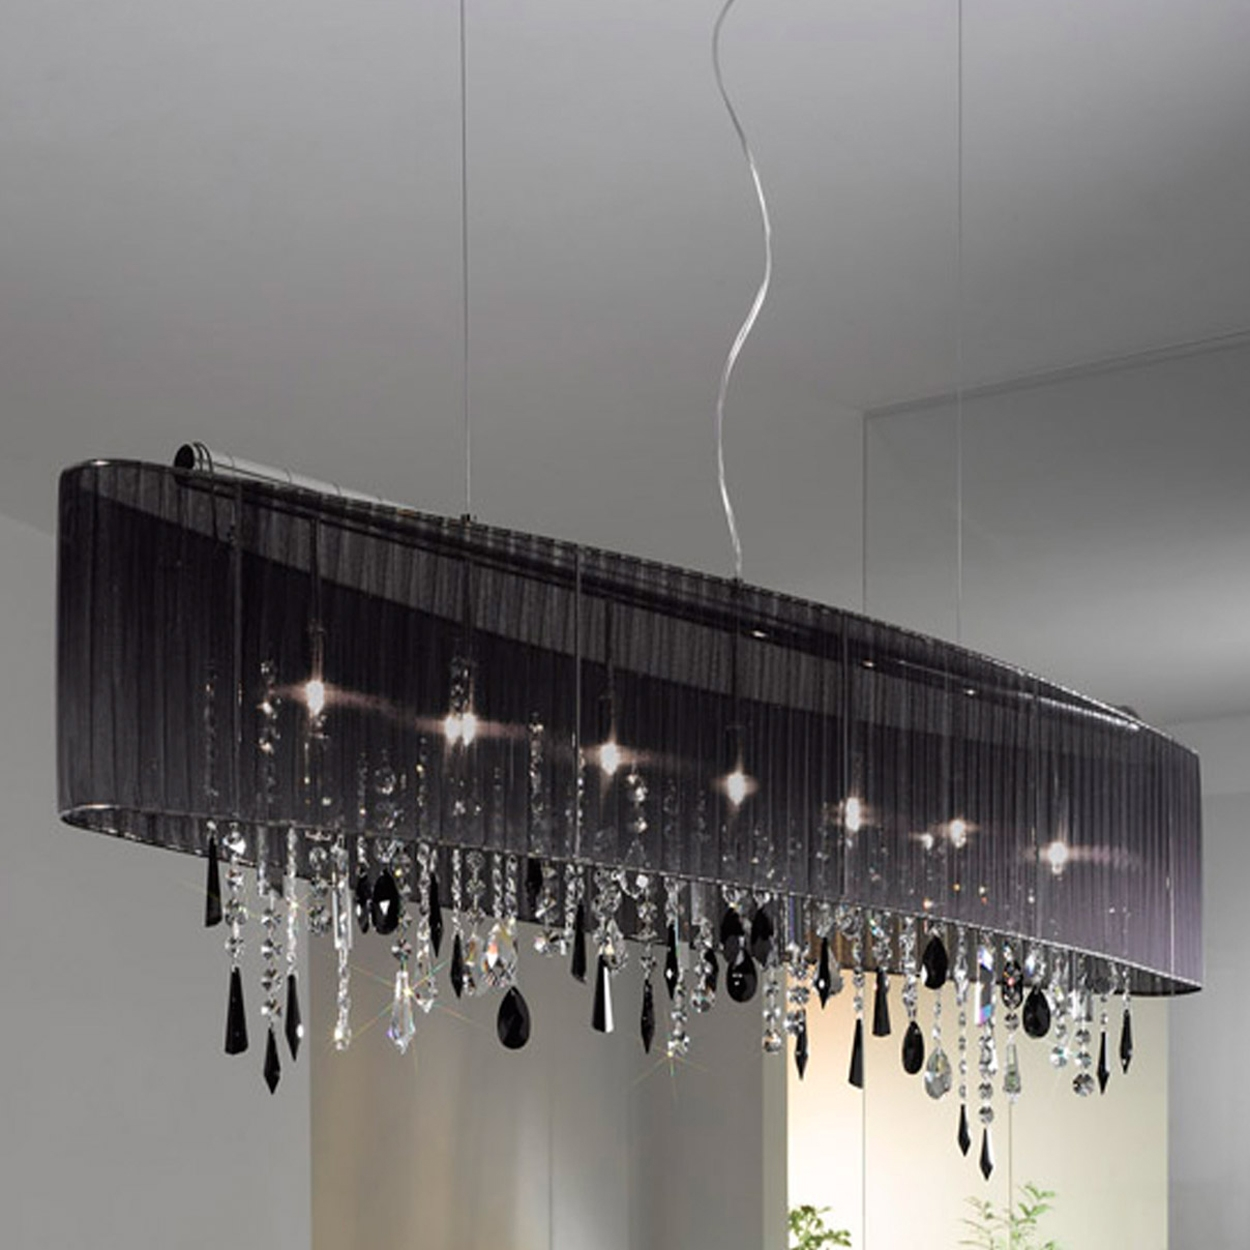 Phenomenal Chandelier Shades Black Picture Ideas Perfect Design Regarding Black Chandeliers With Shades (Image 17 of 25)